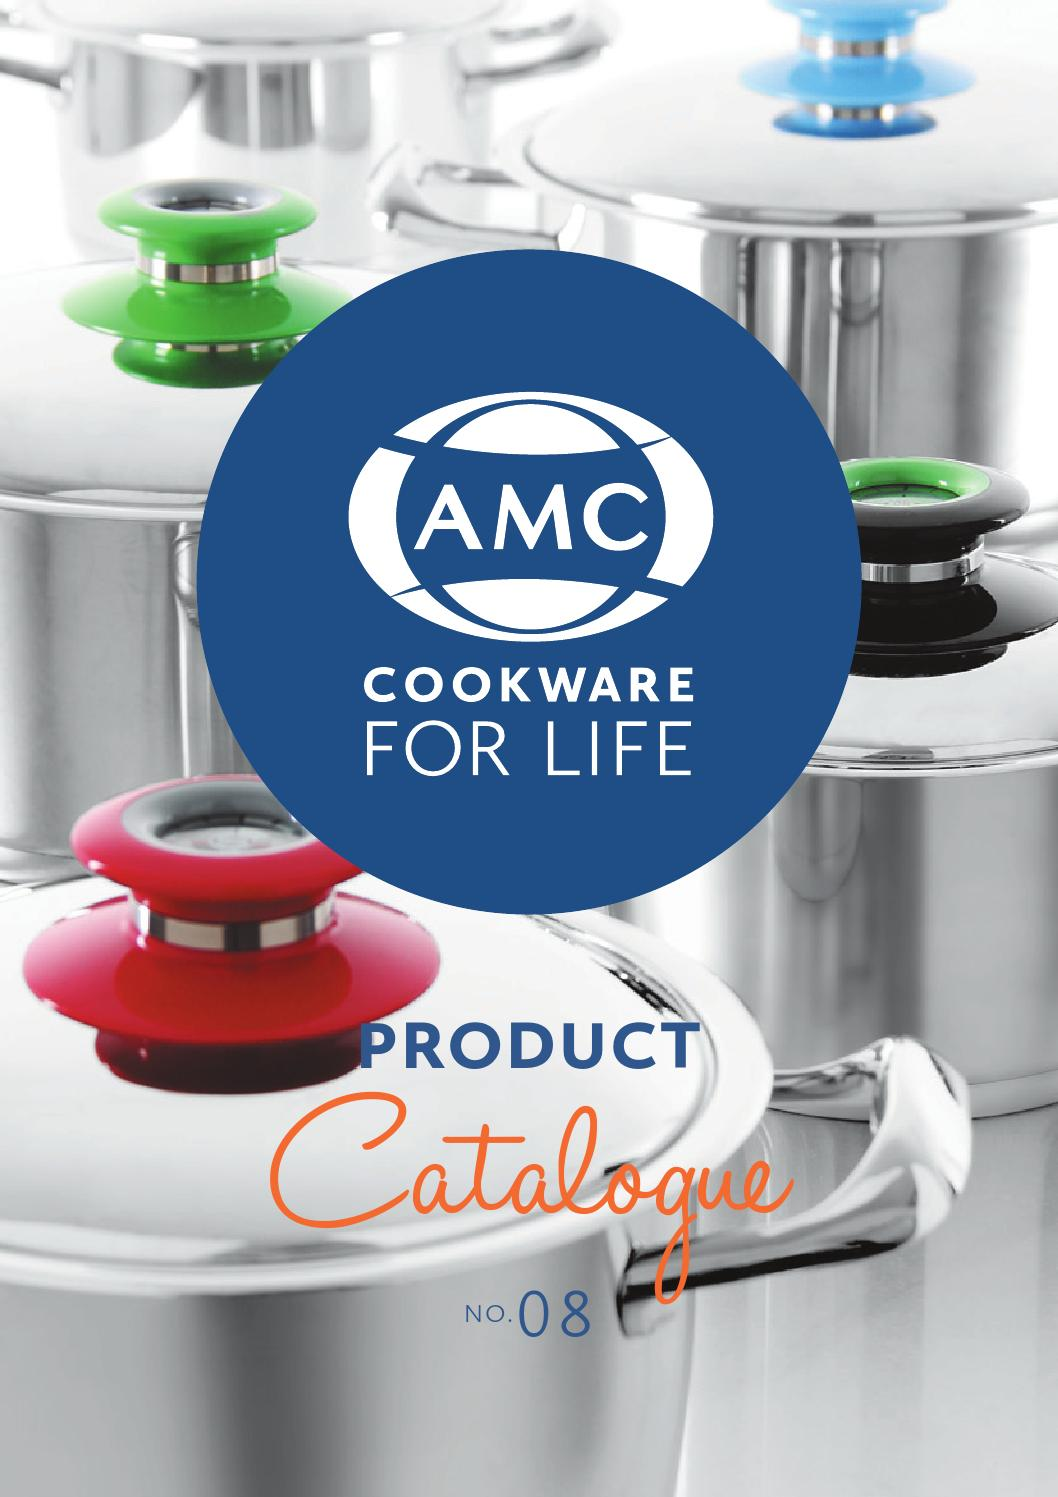 AMC Catalogue – 08 by AMC Cookware - issuu